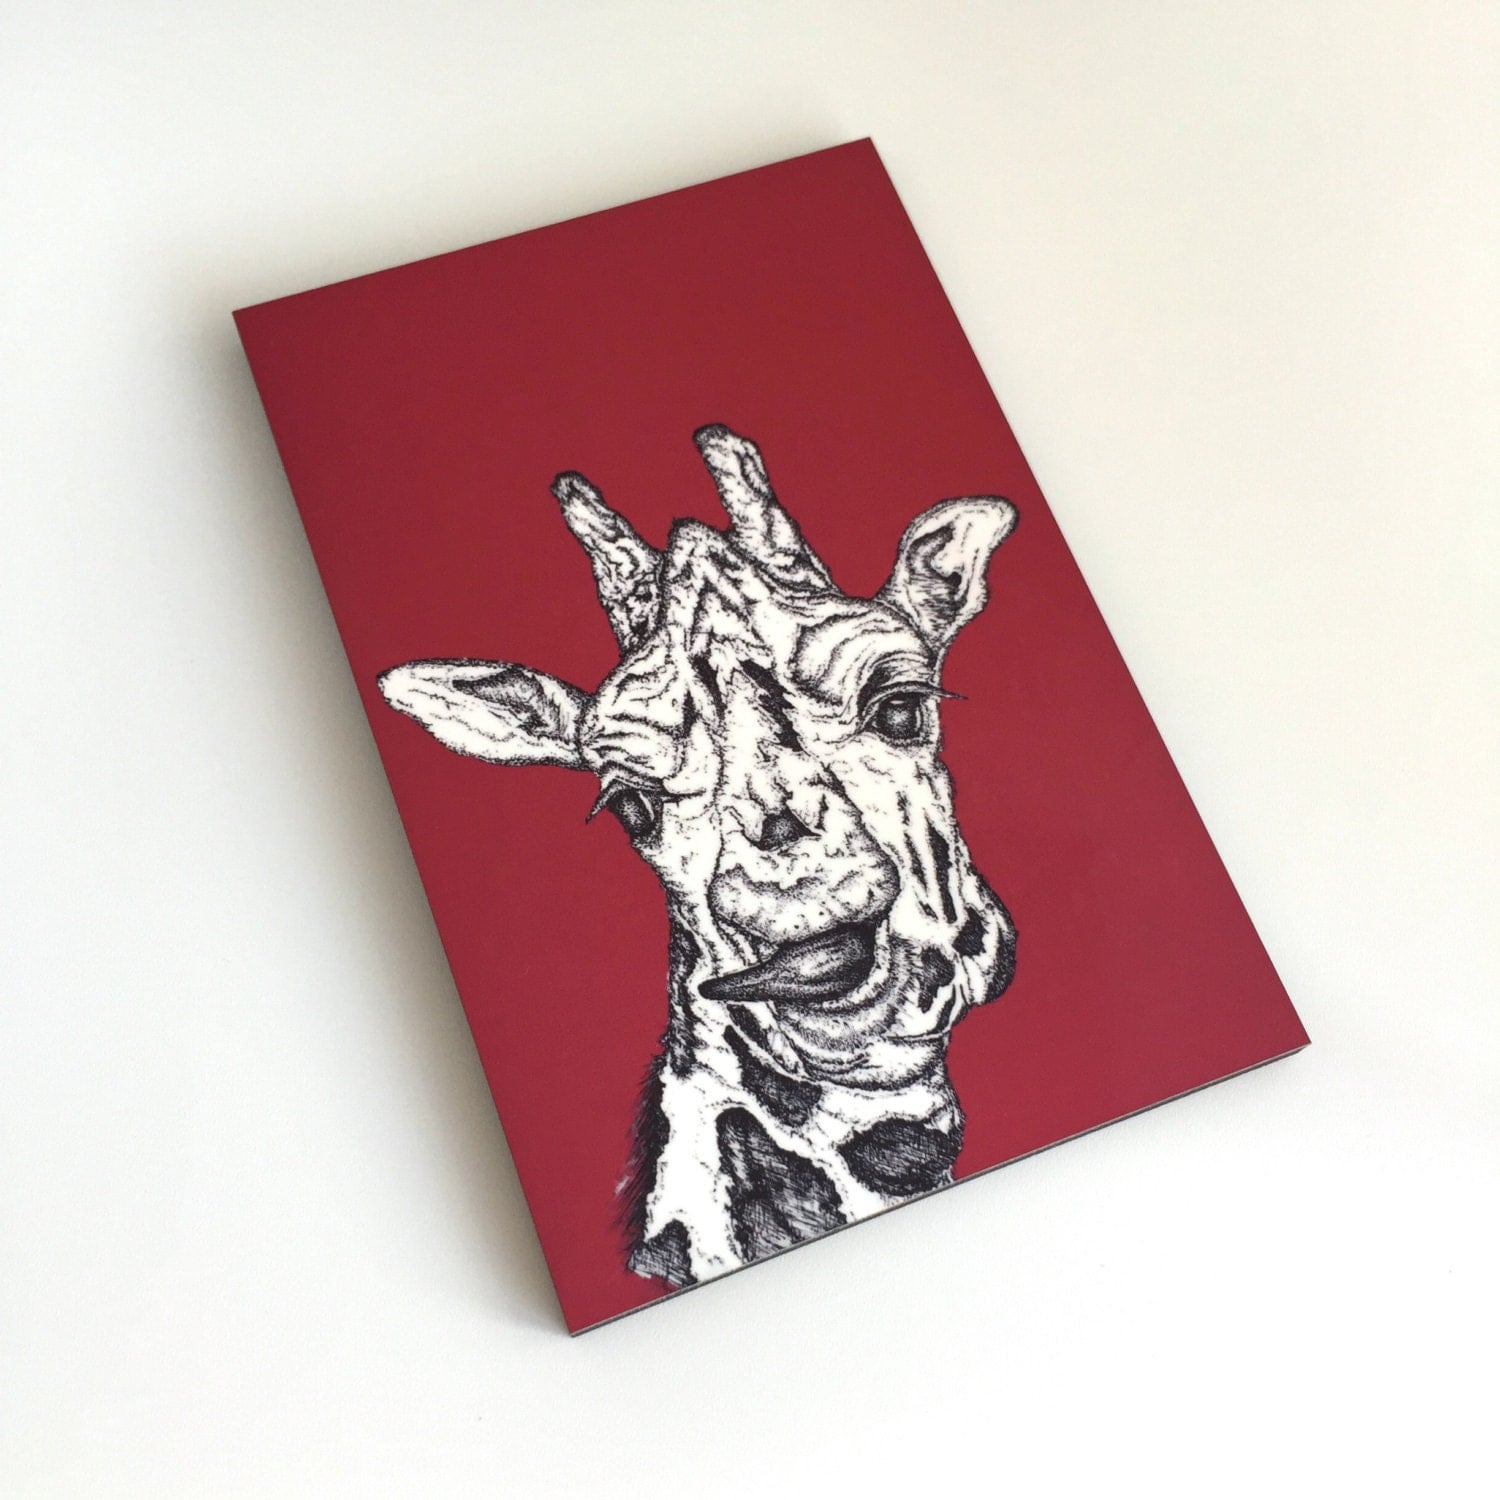 Red giraffe art print on mdf board by